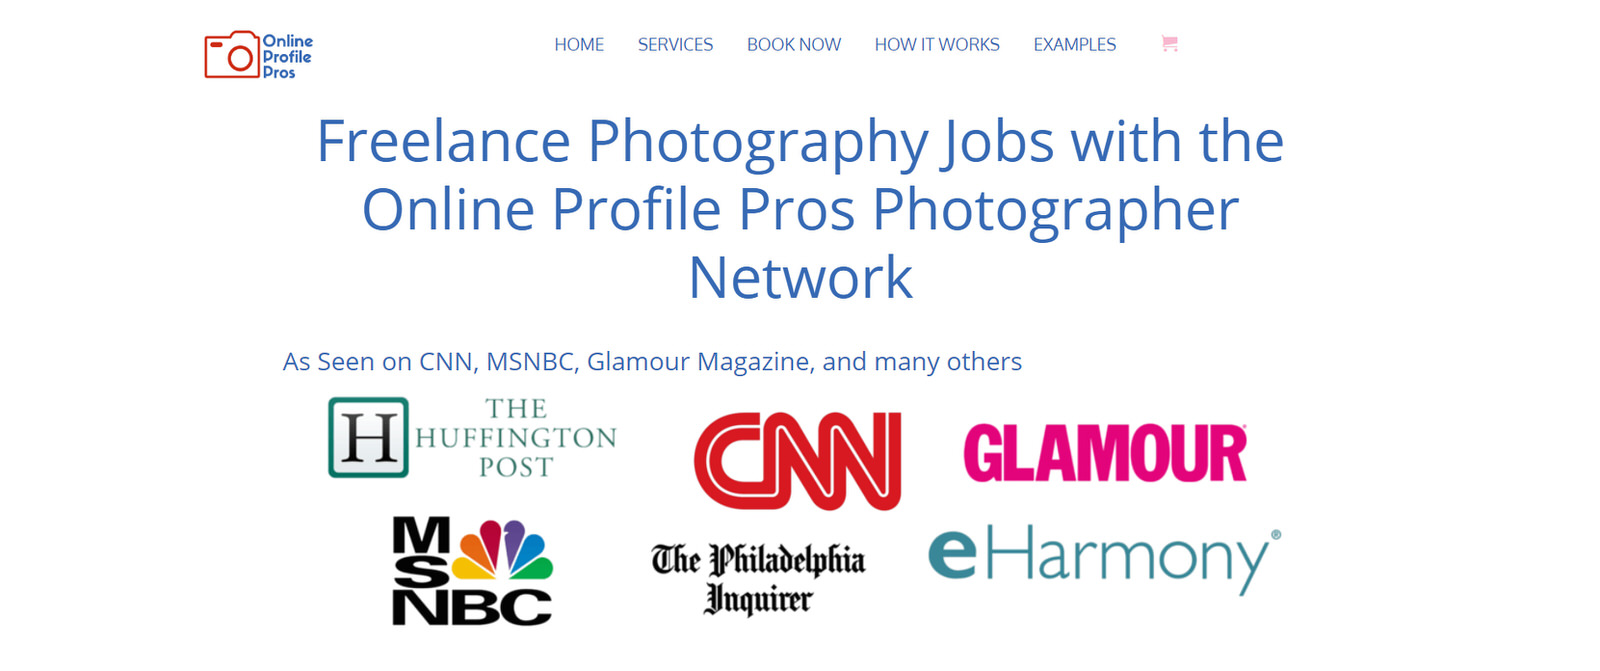 find photography jobs on online profile pros